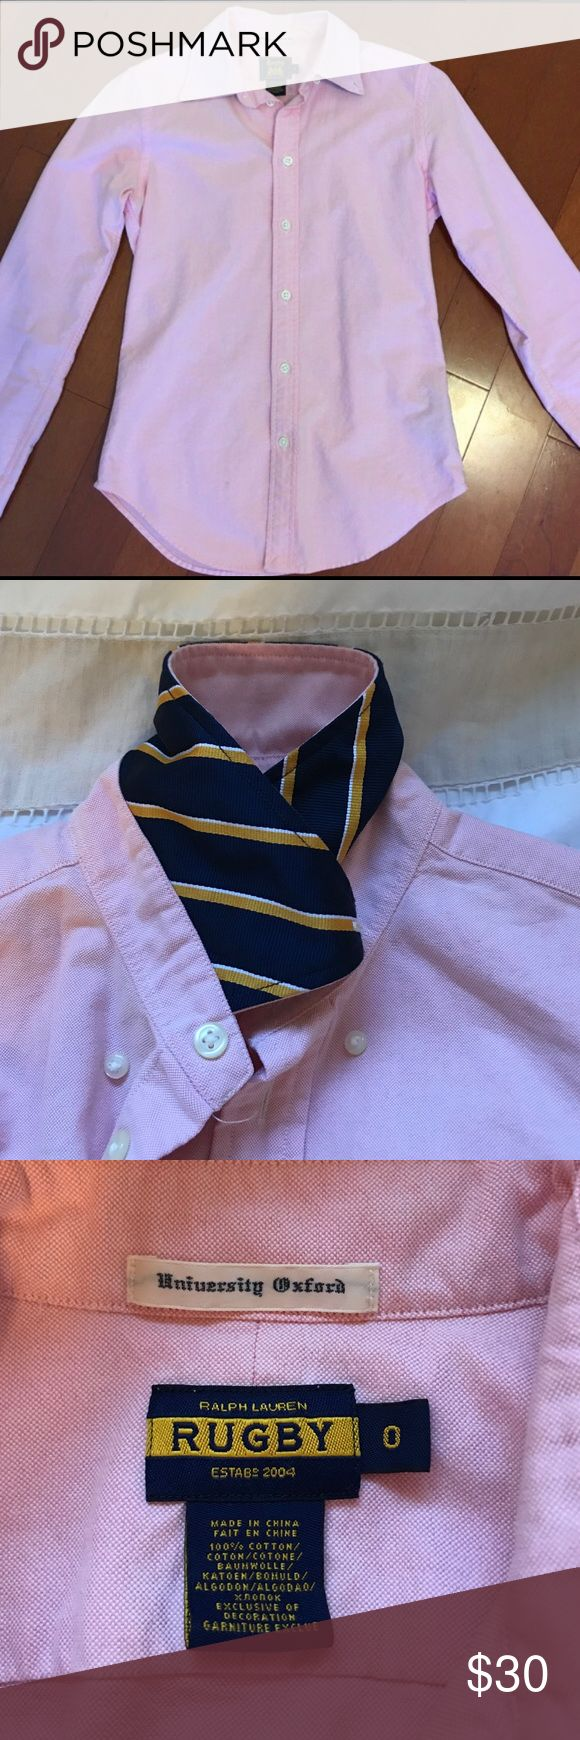 Ralph Lauren Rugby oxford shirt Ralph Lauren rugby oxford shirt 0 Ralph Lauren Tops Button Down Shirts